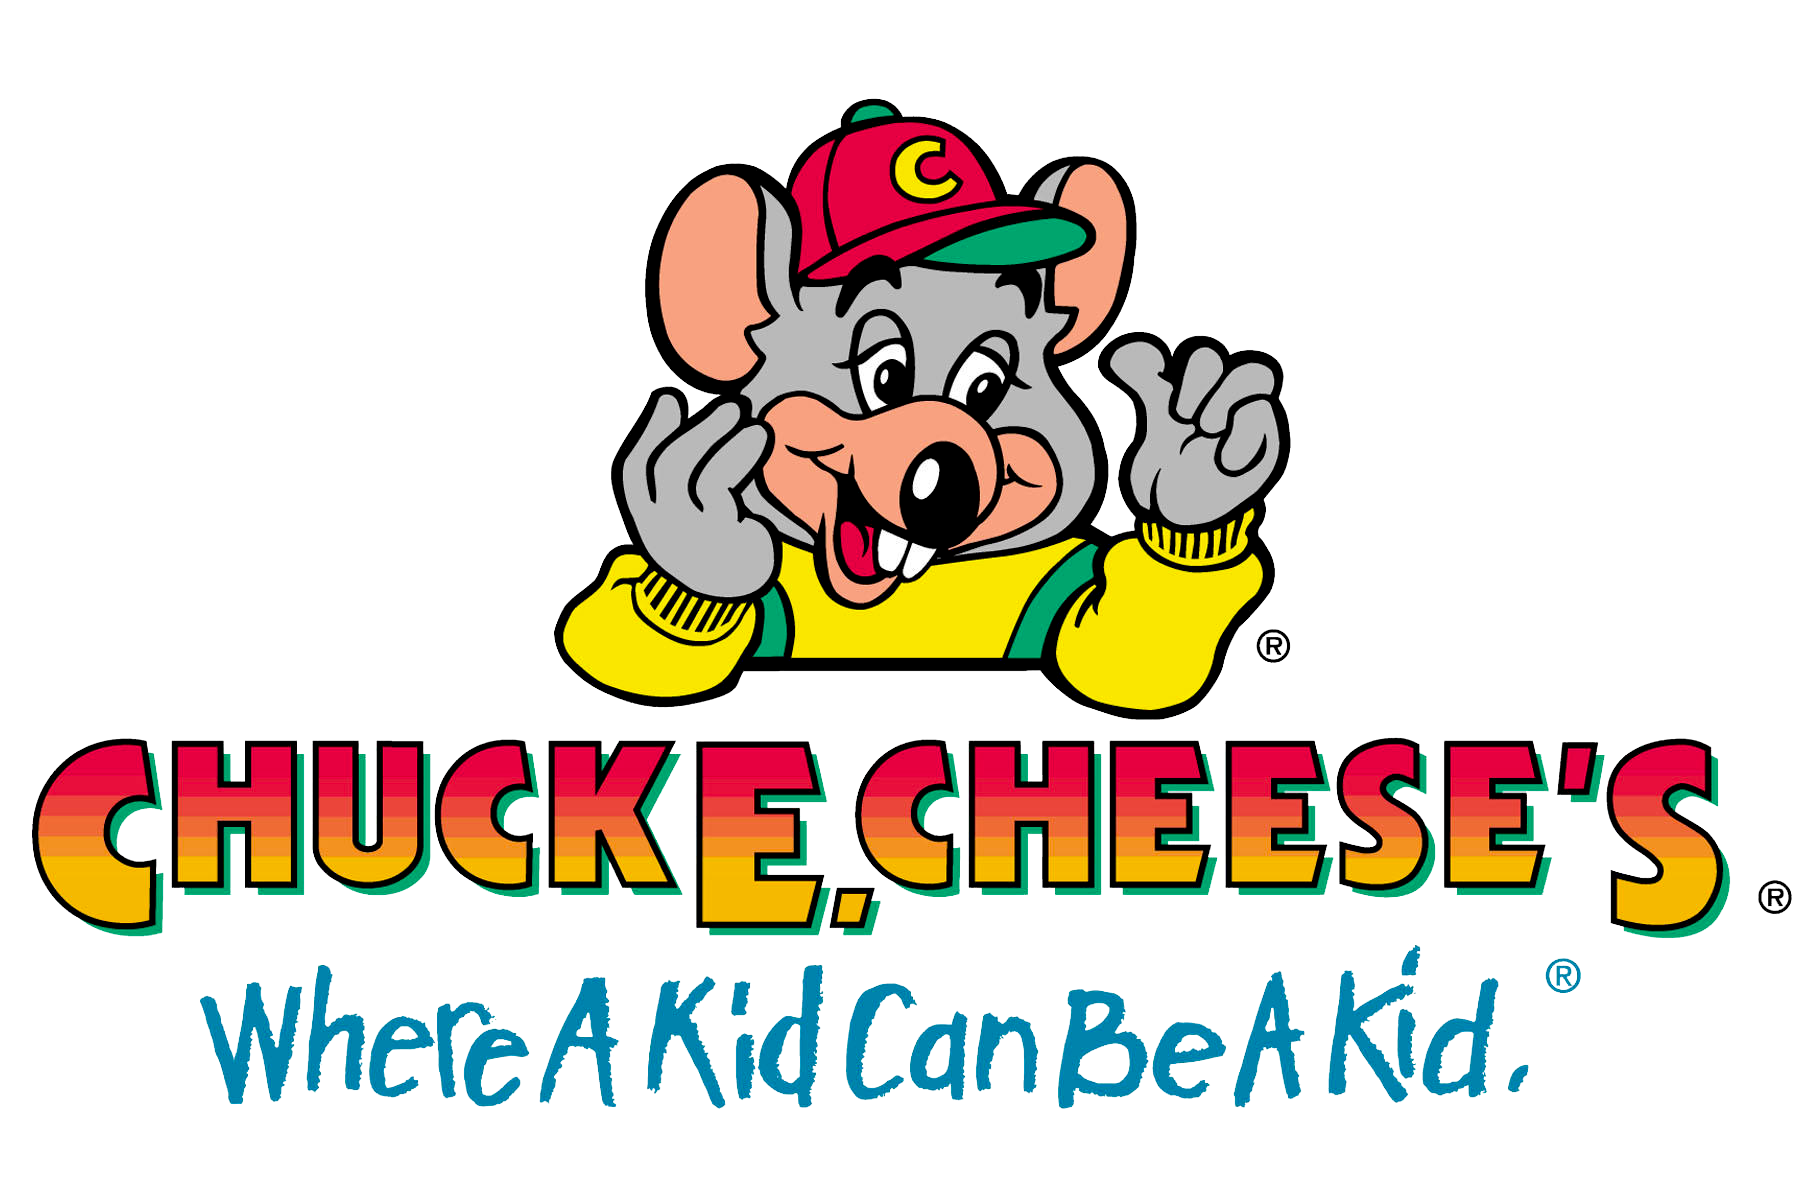 Chuck E. Cheese's Menu and Prices. Want to eat at Chuck E. Cheese's right now? Restaurantfoodmenu is an online guidance for Chuck E. Cheese's menu, providing prices information of Chuck E. Cheese's breakfast, specials, kids, value menu.